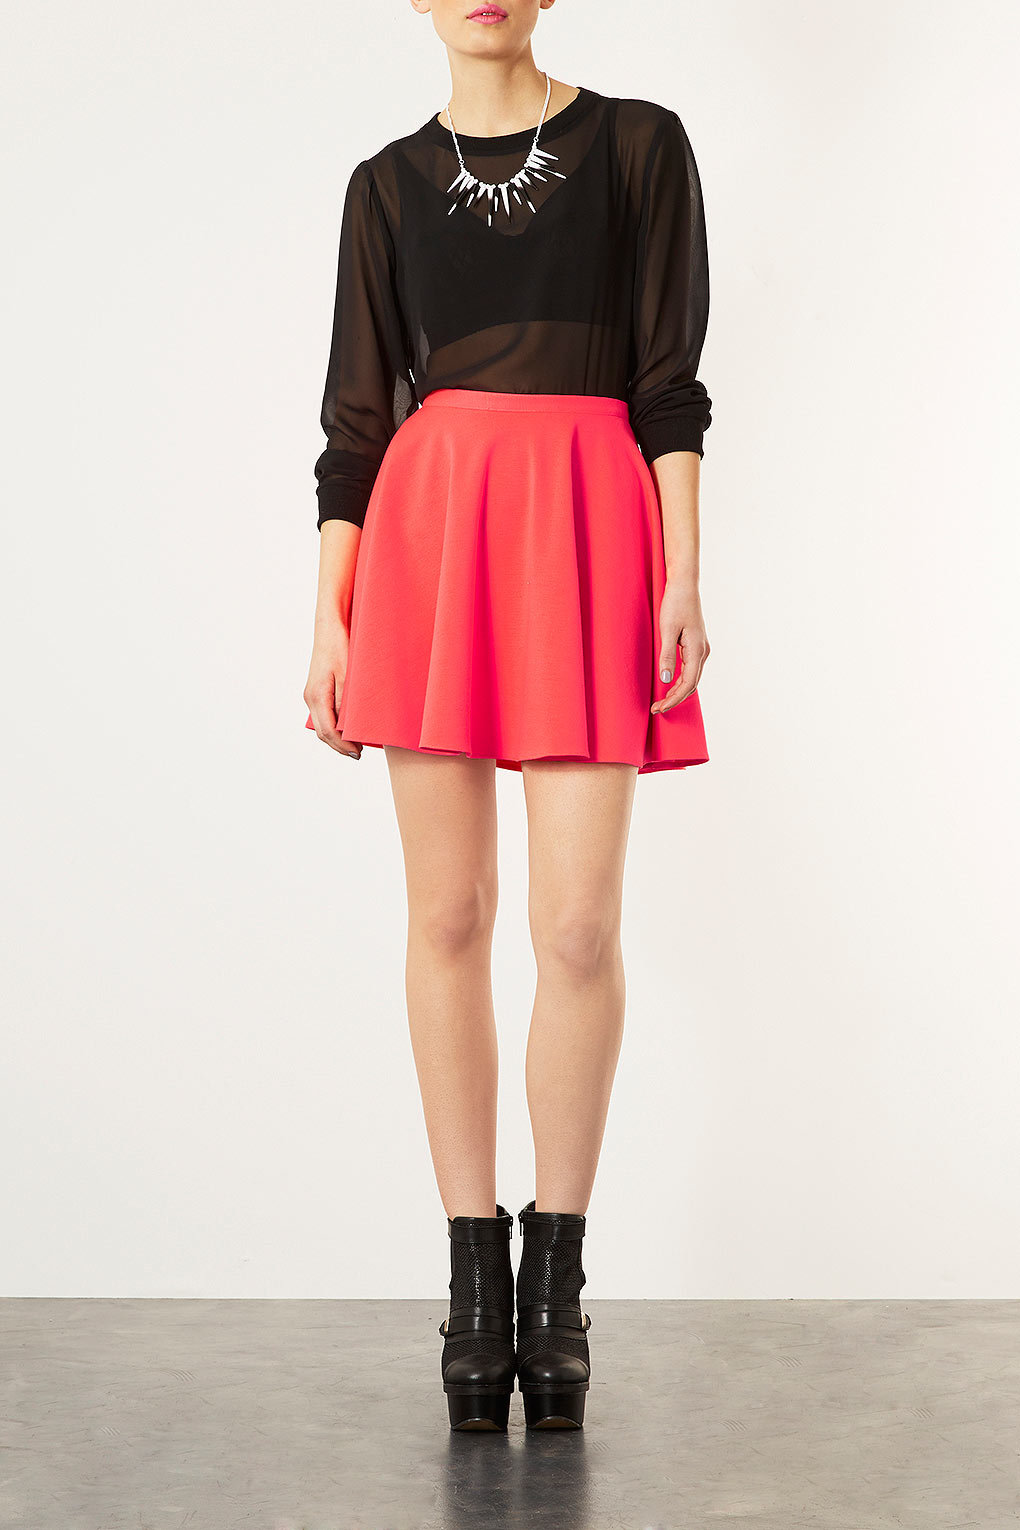 Fluro Pink Skater Skirt - Topshop USA on Wanelo